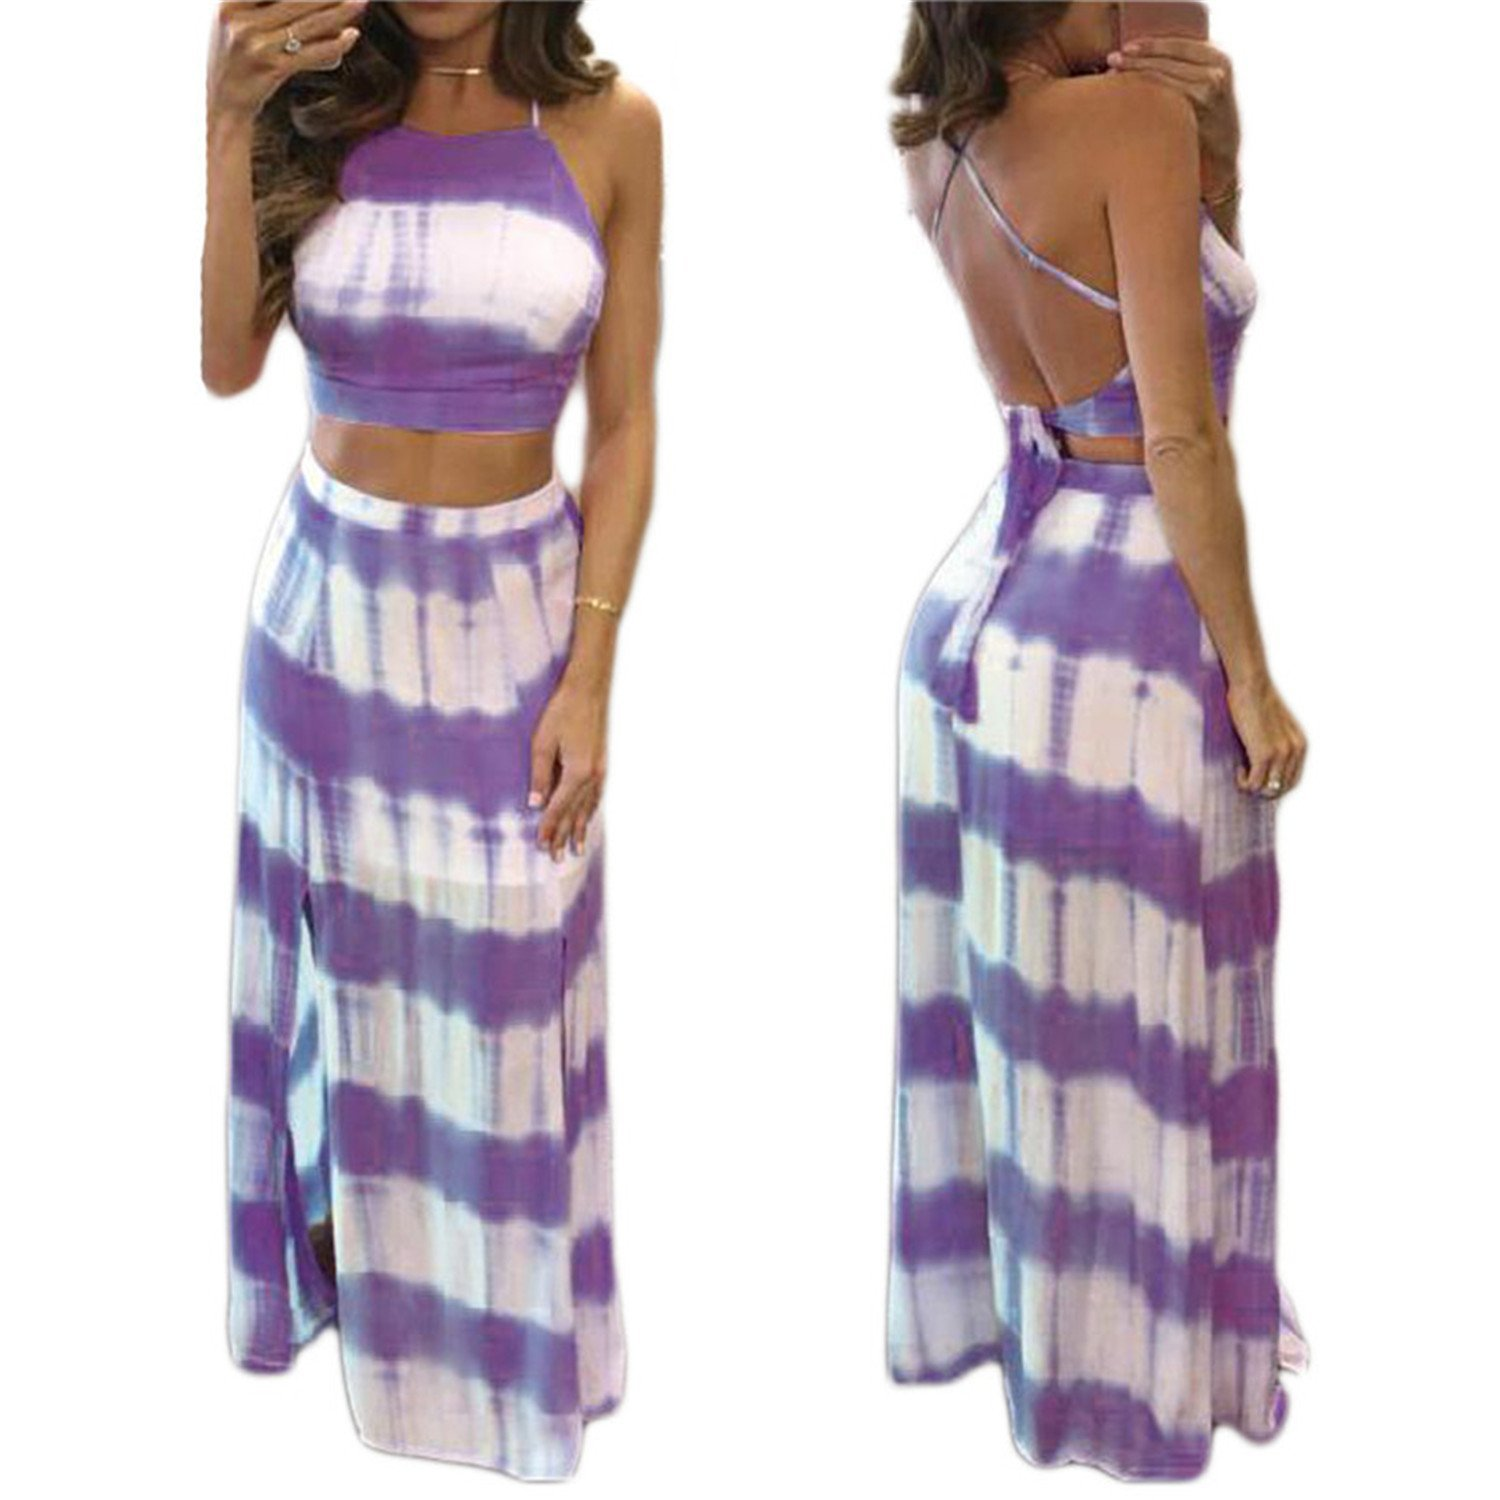 4c3f618d33640 Get Quotations · Chiffoned Sexy Crop Tops Long Skirt Women 2 Piece Set  Summer Gradient Color Stripe Print Halter